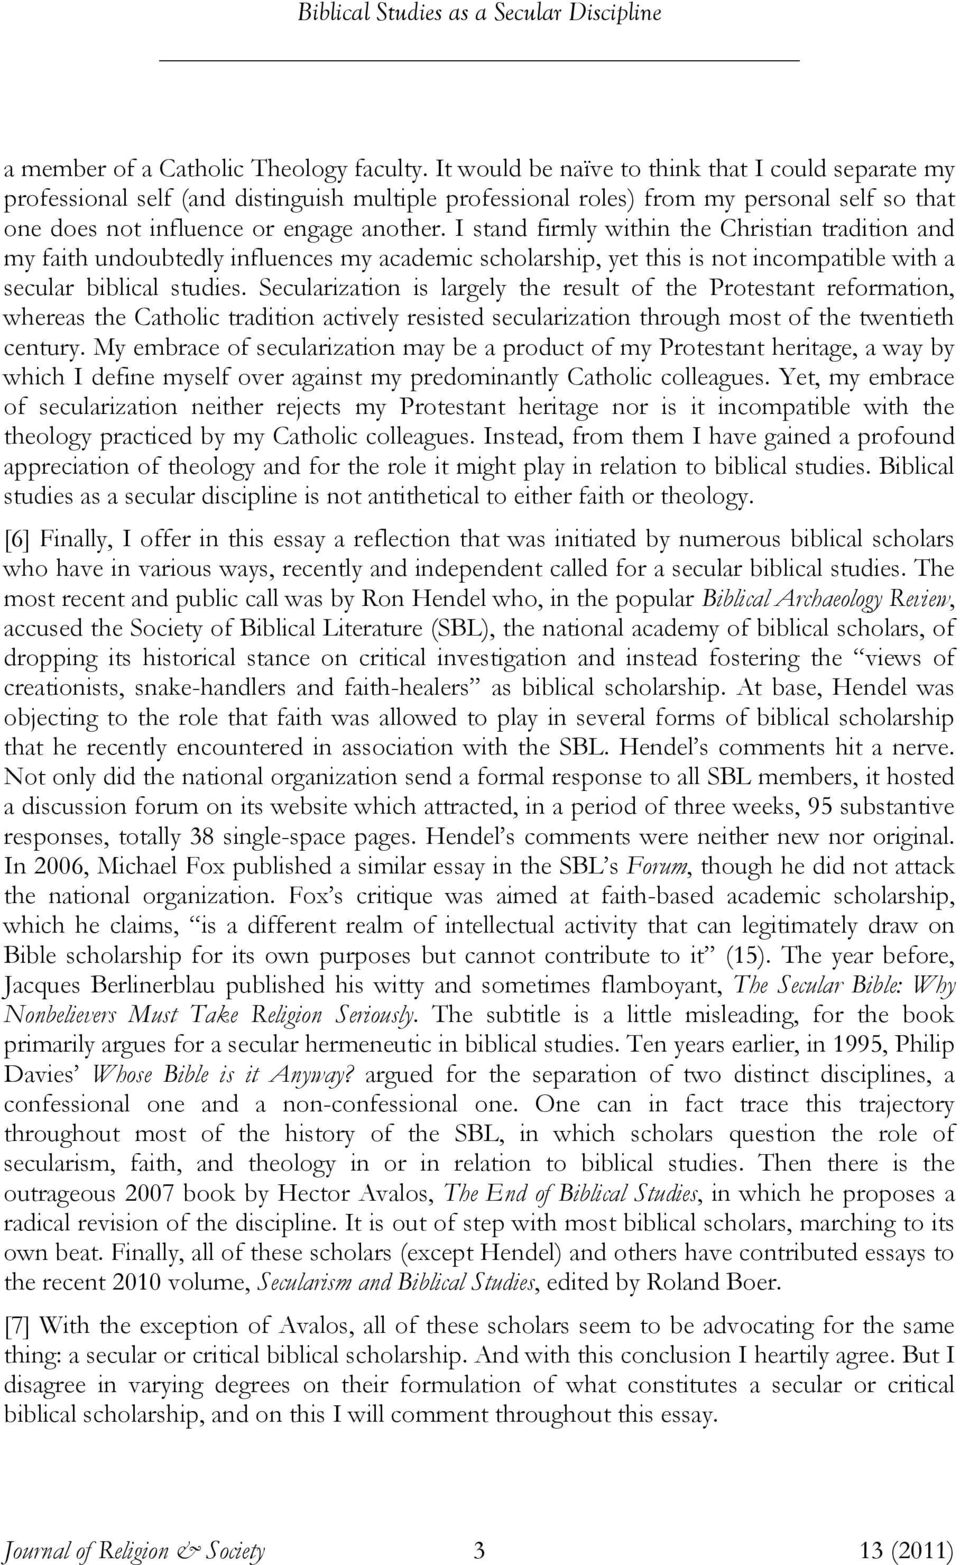 fundamentalism secularization essay Francis and fundamentalism which beleaguered believers attempt to preserve their distinctive identities or groups in the face of modernity and secularization they were professors at established universities who wrote the 90 essays in the fundamentals (1910-15) focused on.